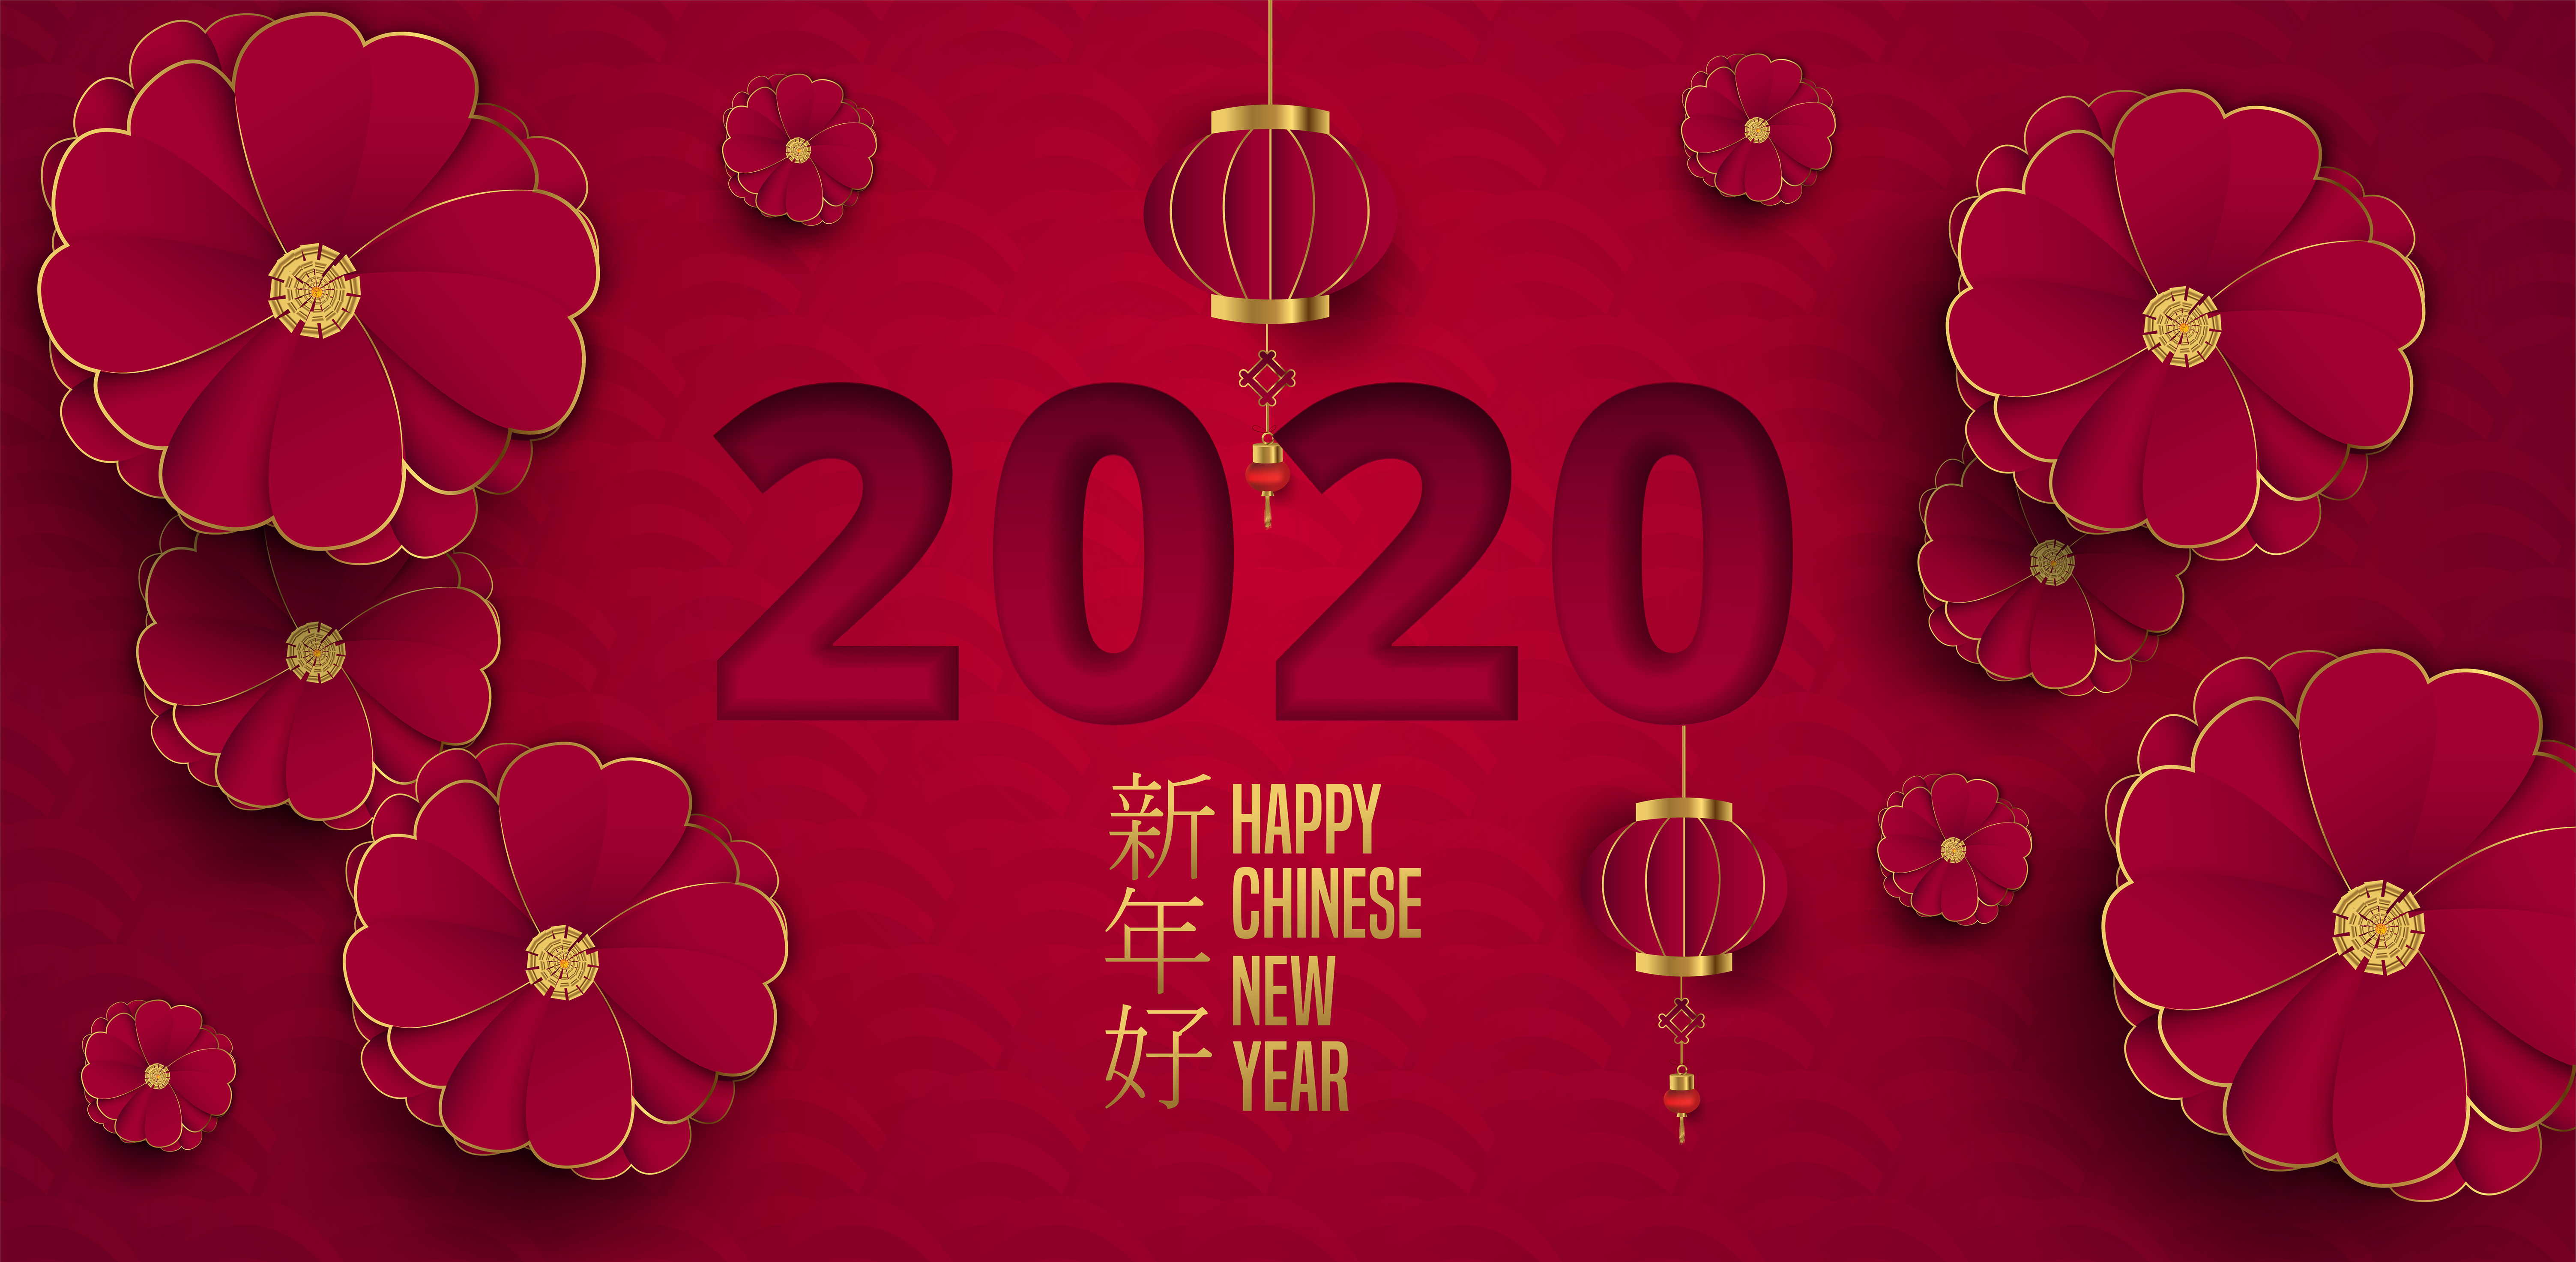 Chinese New Year Card With Flowers Lanterns And Clouds In Layered Paper Download Free Vectors Clipart Graphics Vector Art